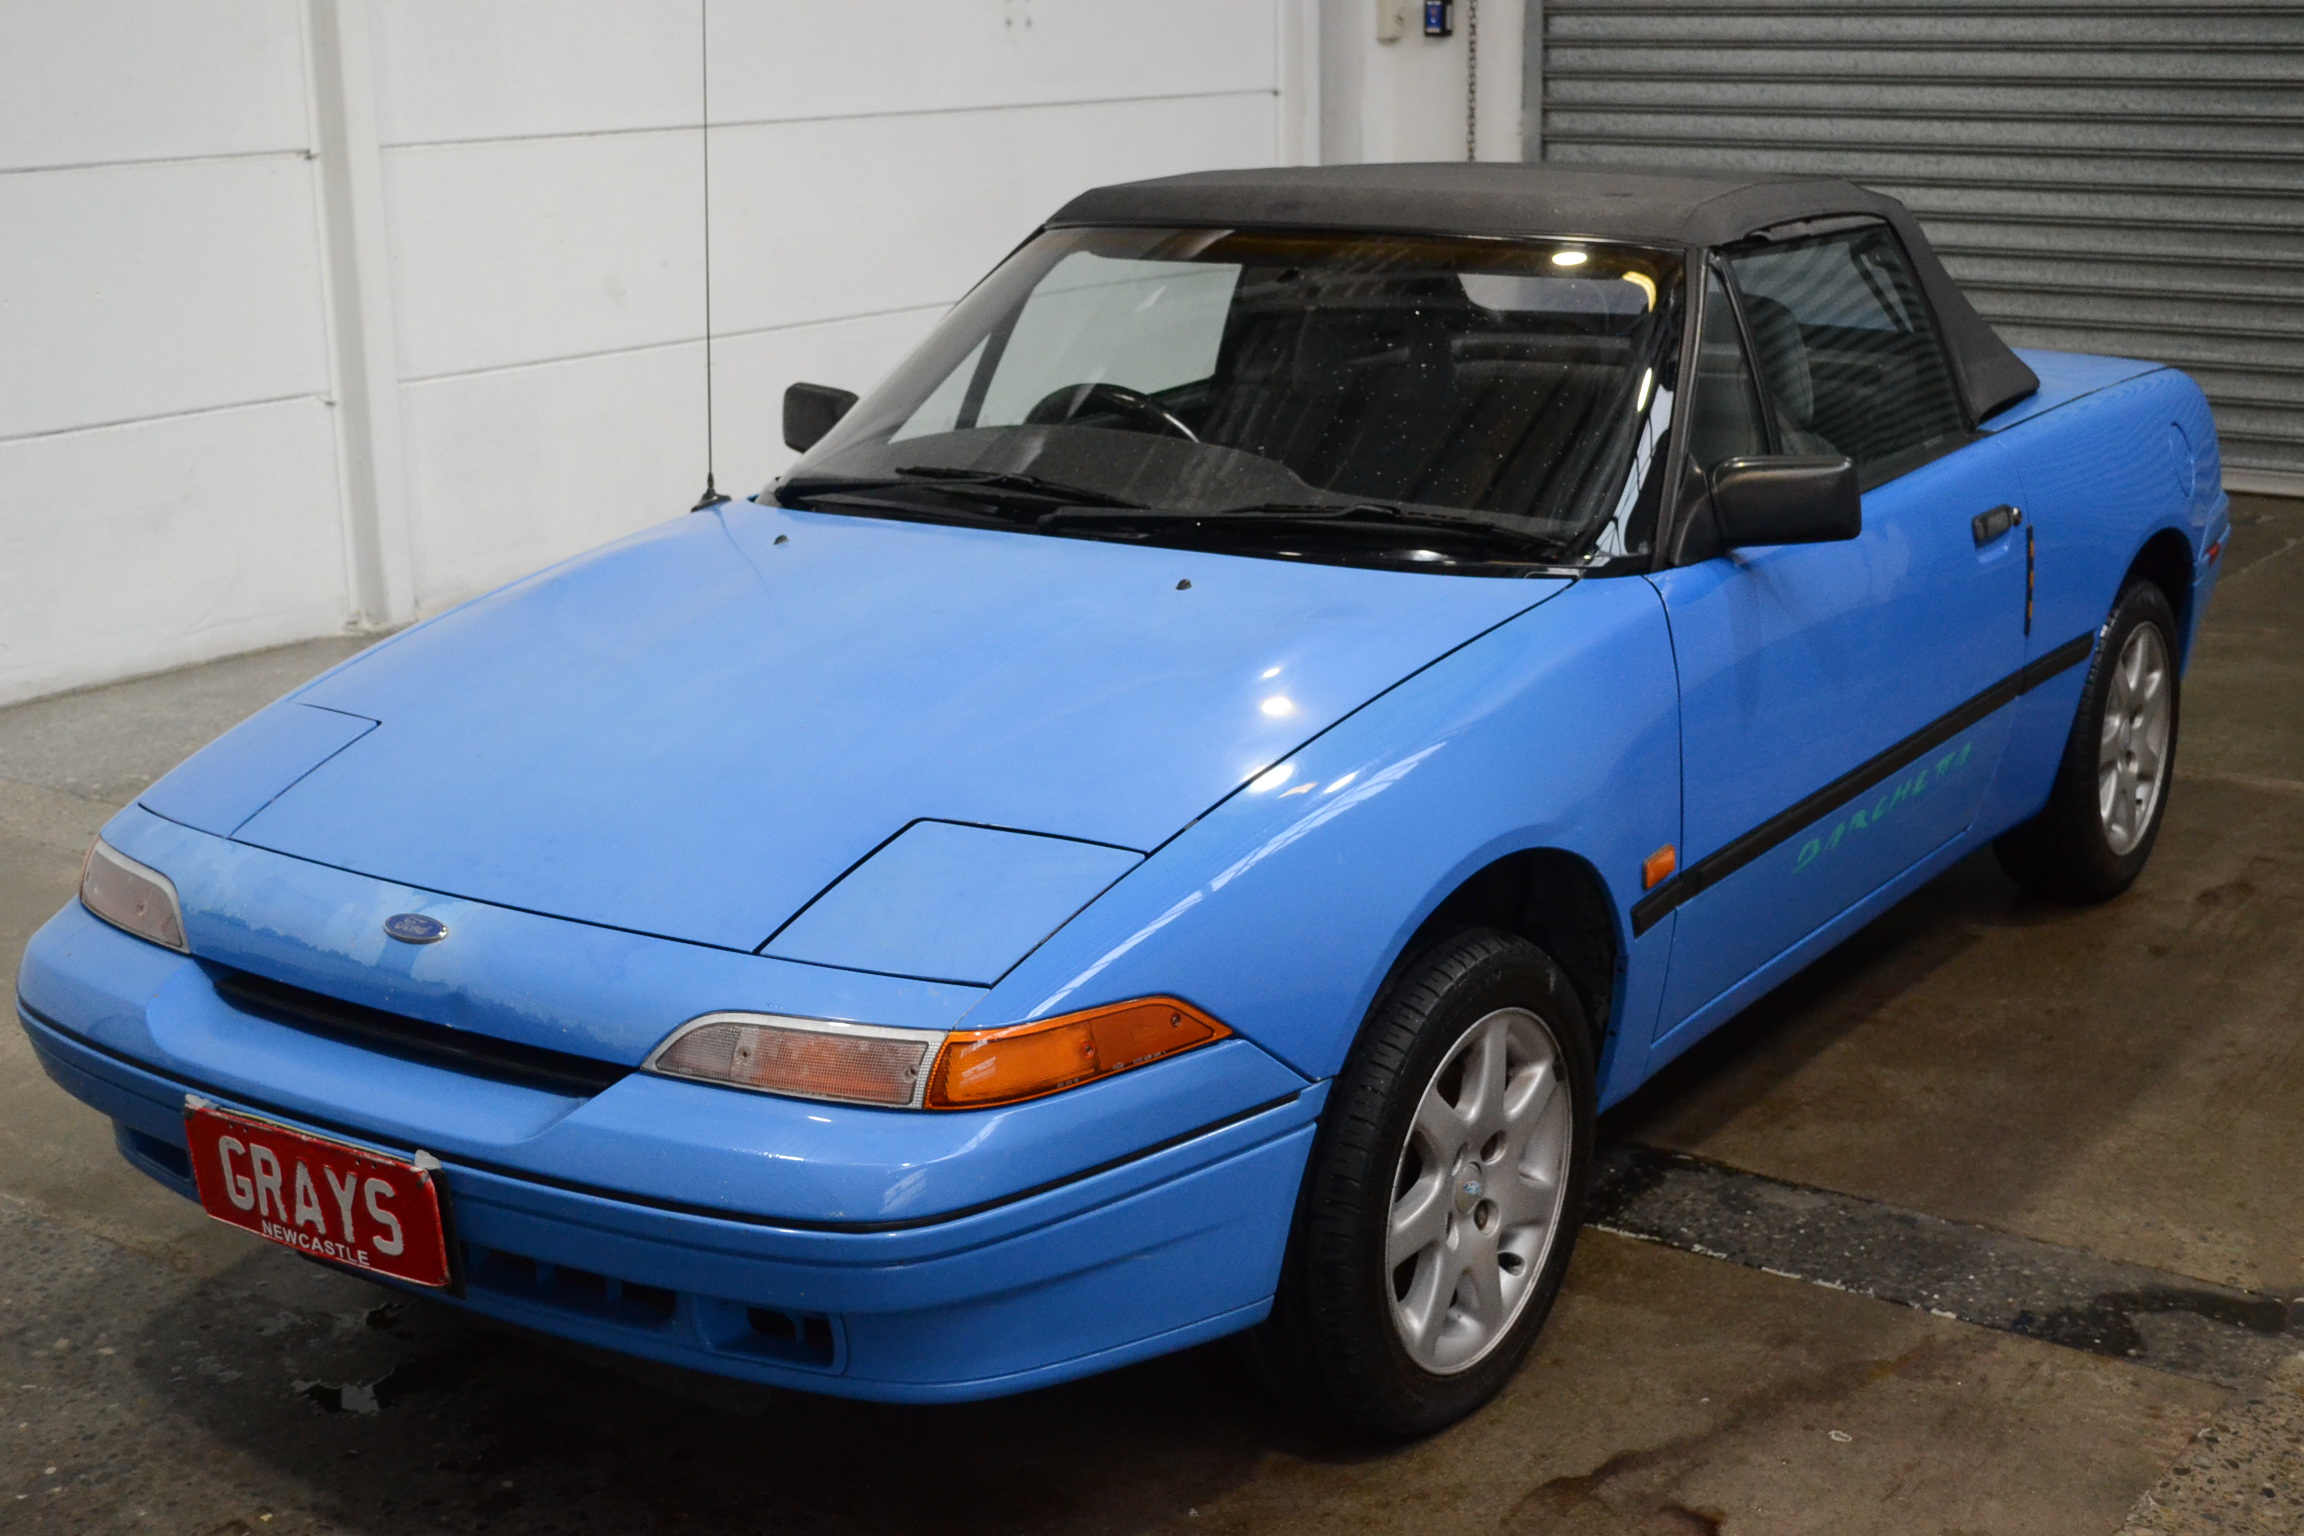 1992 Ford Capri Barchetta SC Manual Convertible